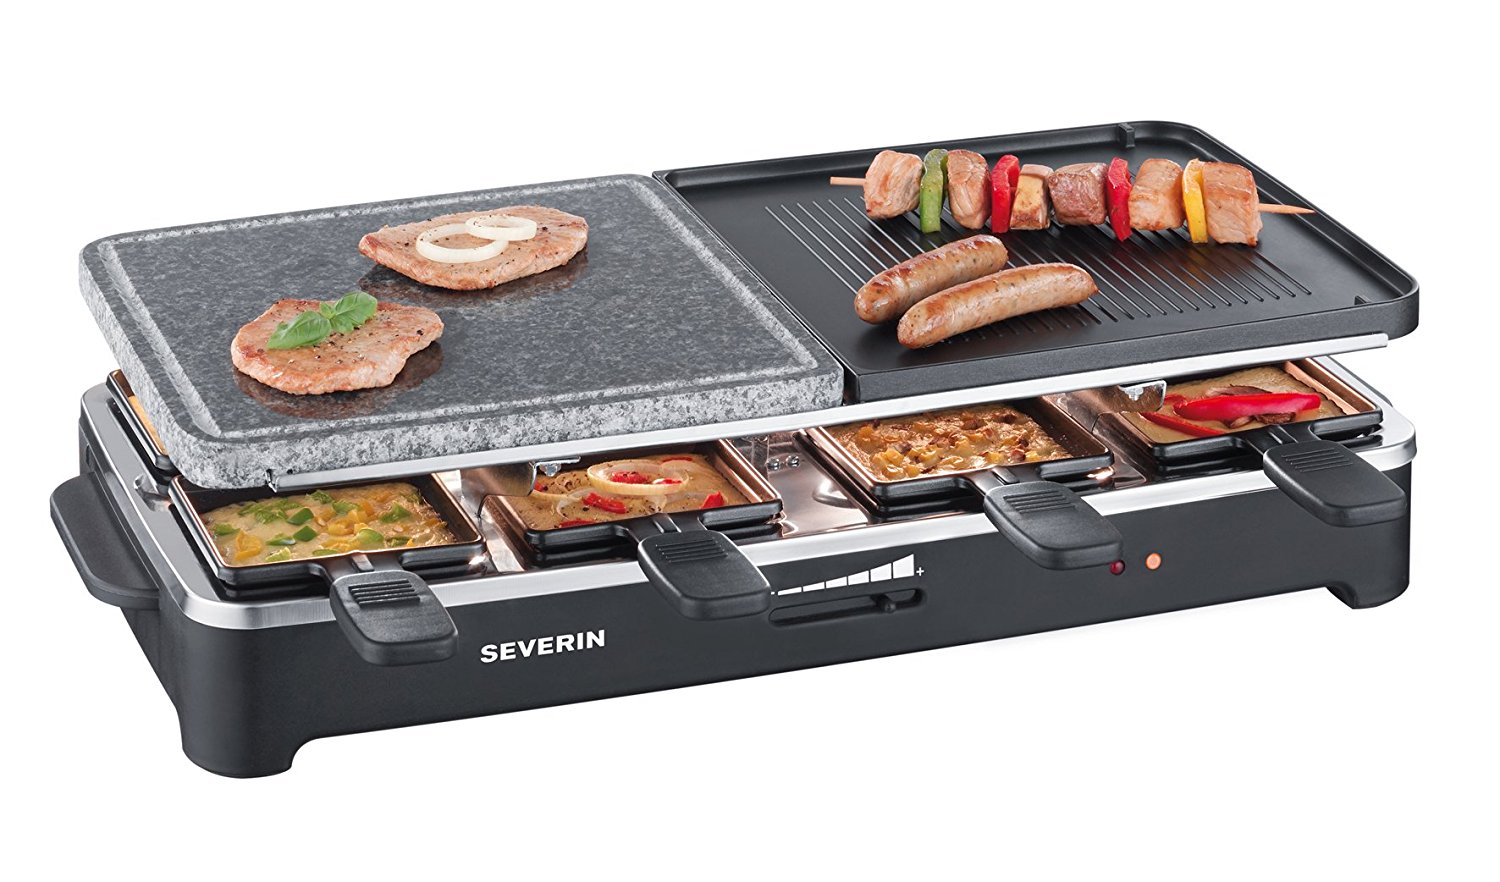 Severin RG 2341 Raclette Test